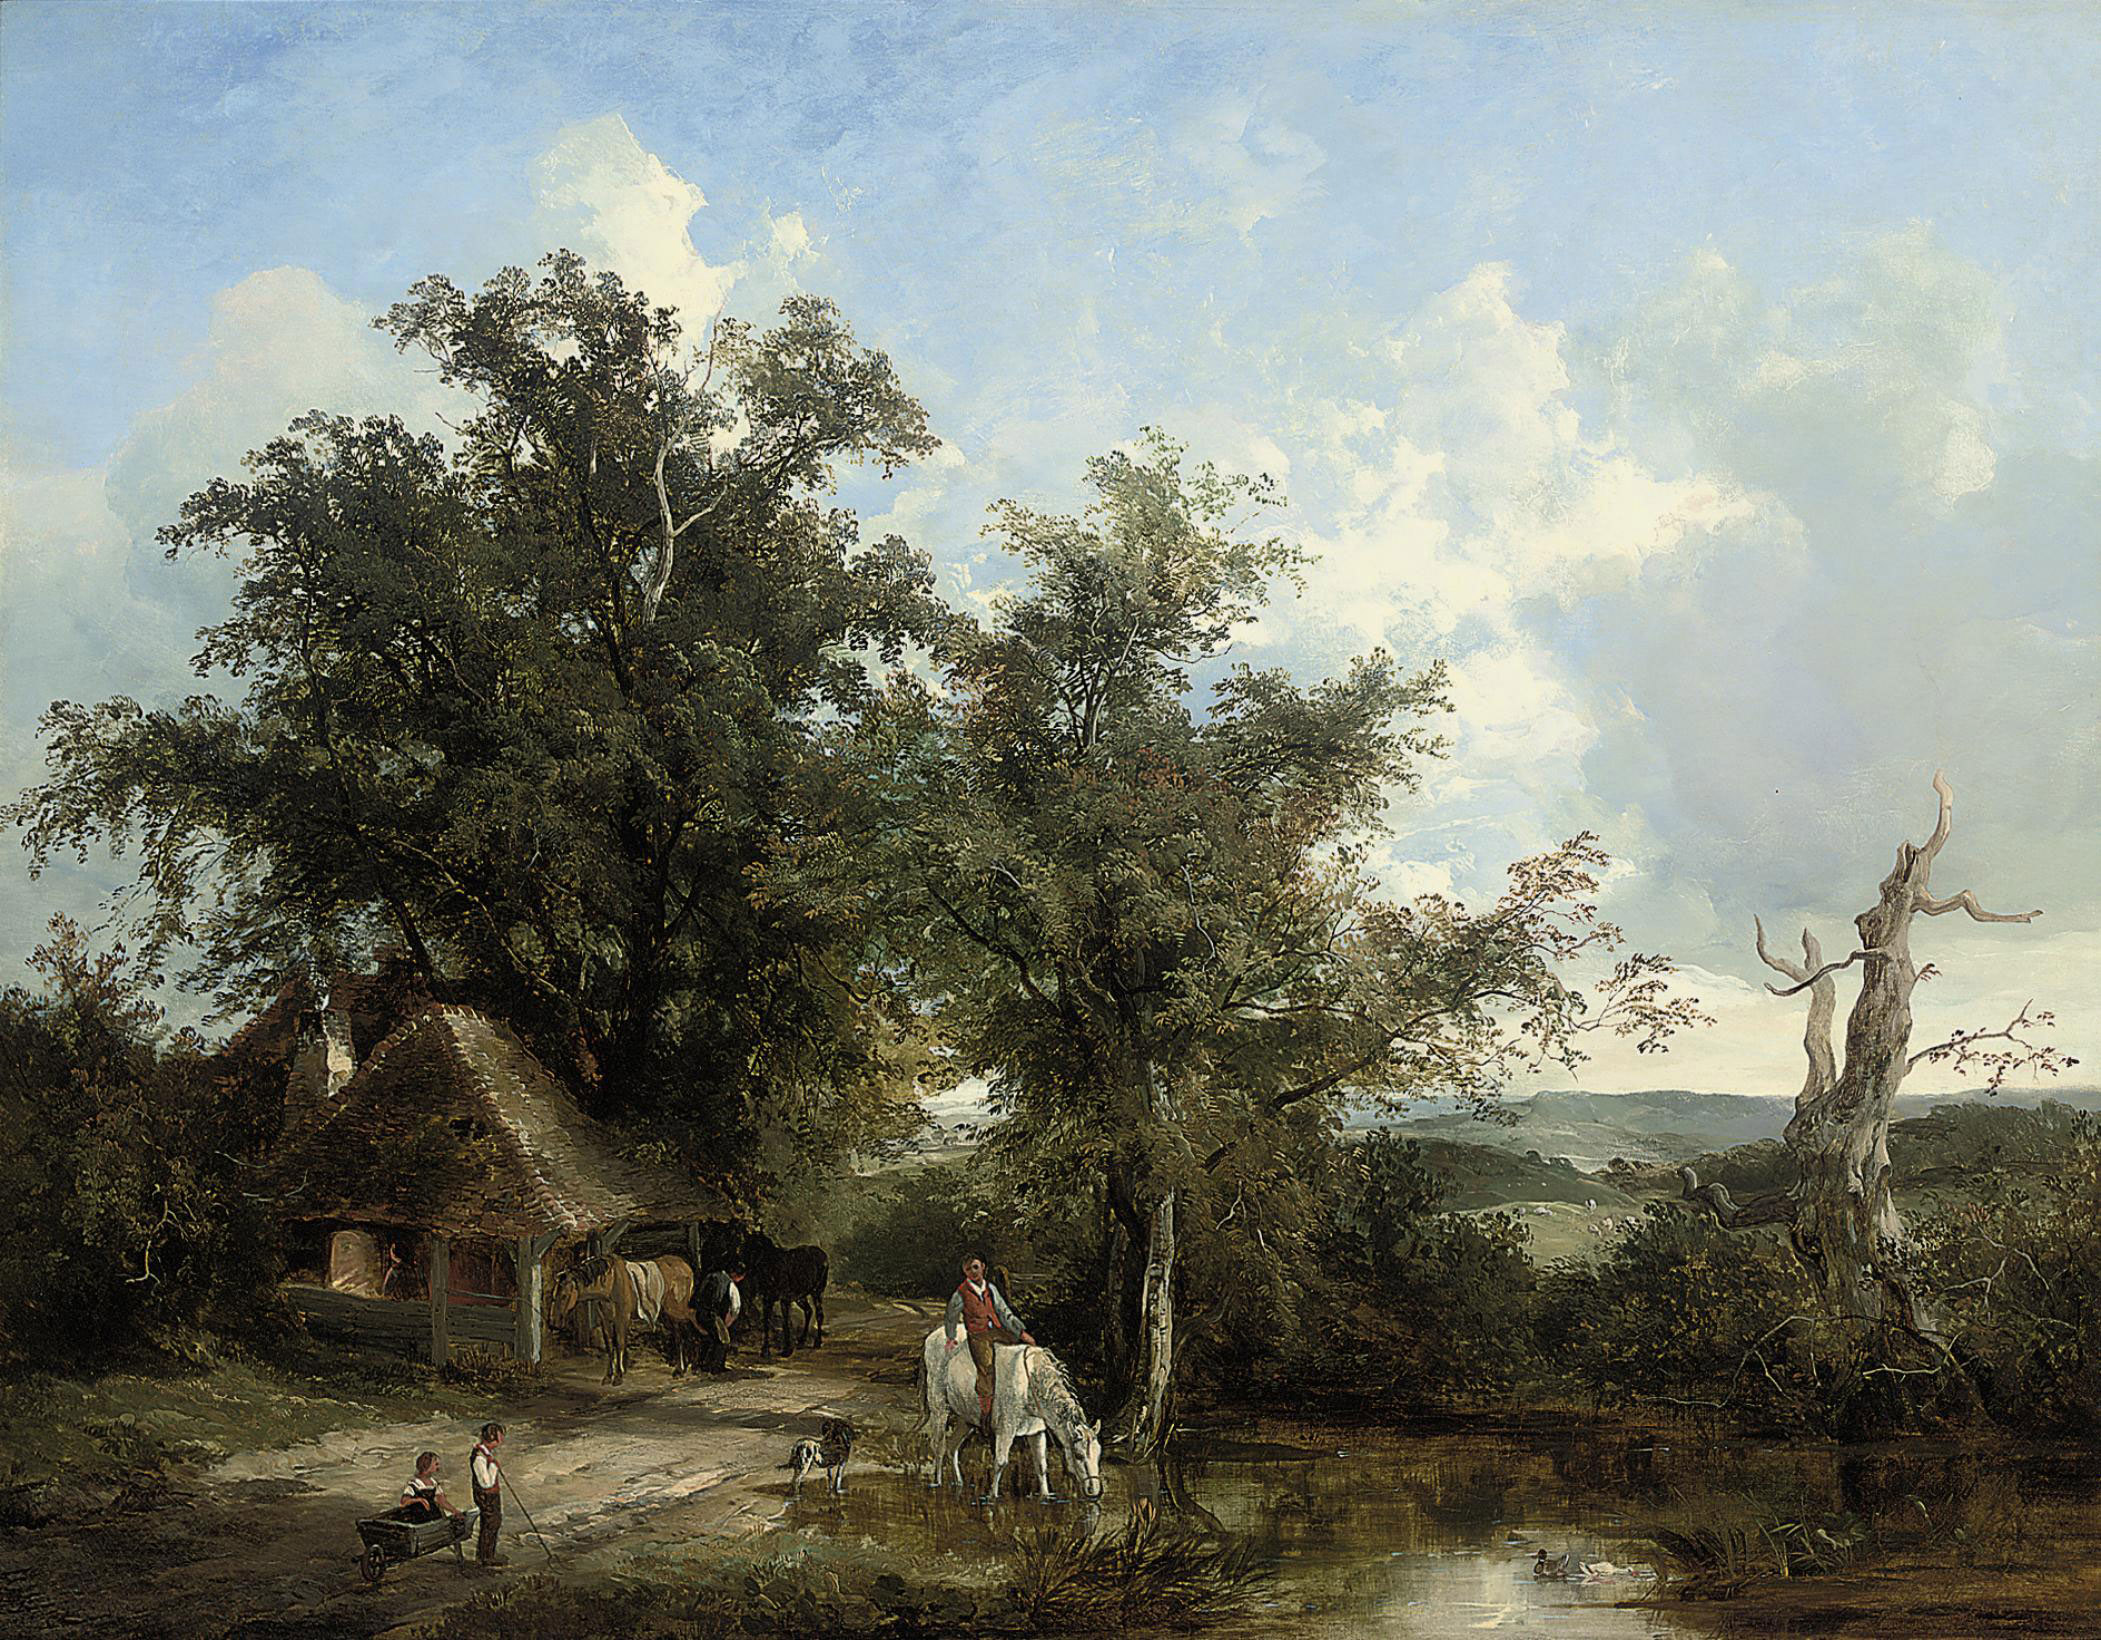 Figures watering a horse beside a country road